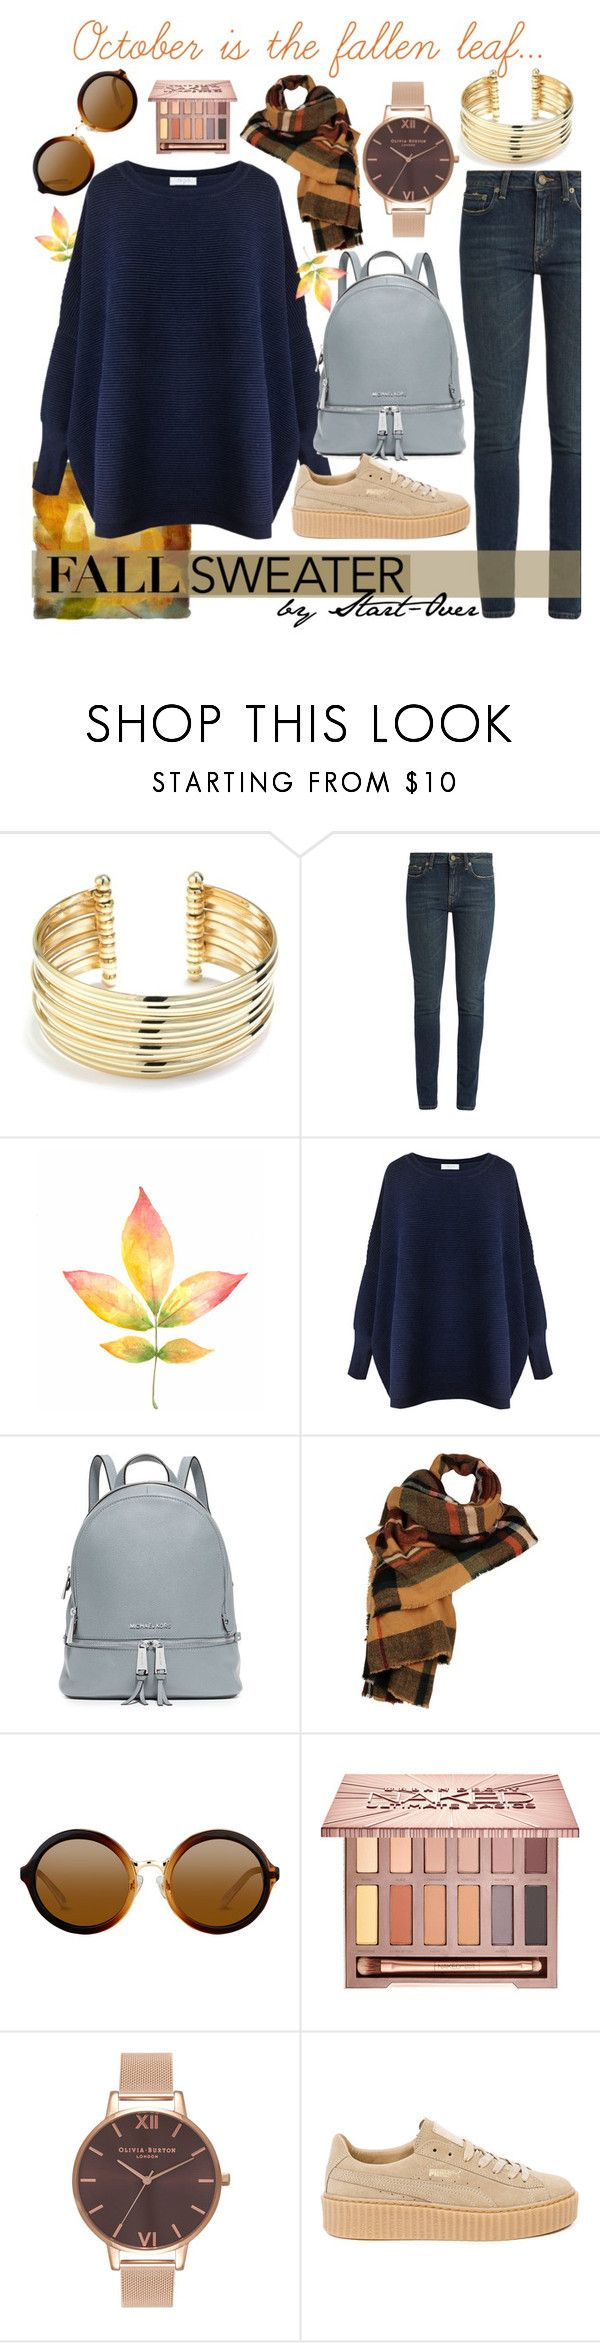 """Fallen Leaf"" by start-over ❤ liked on Polyvore featuring Belk Silverworks, Yves Saint Laurent, Paisie, MICHAEL Michael Kors, Wilsons Leather, Urban Decay, Olivia Burton and Puma"